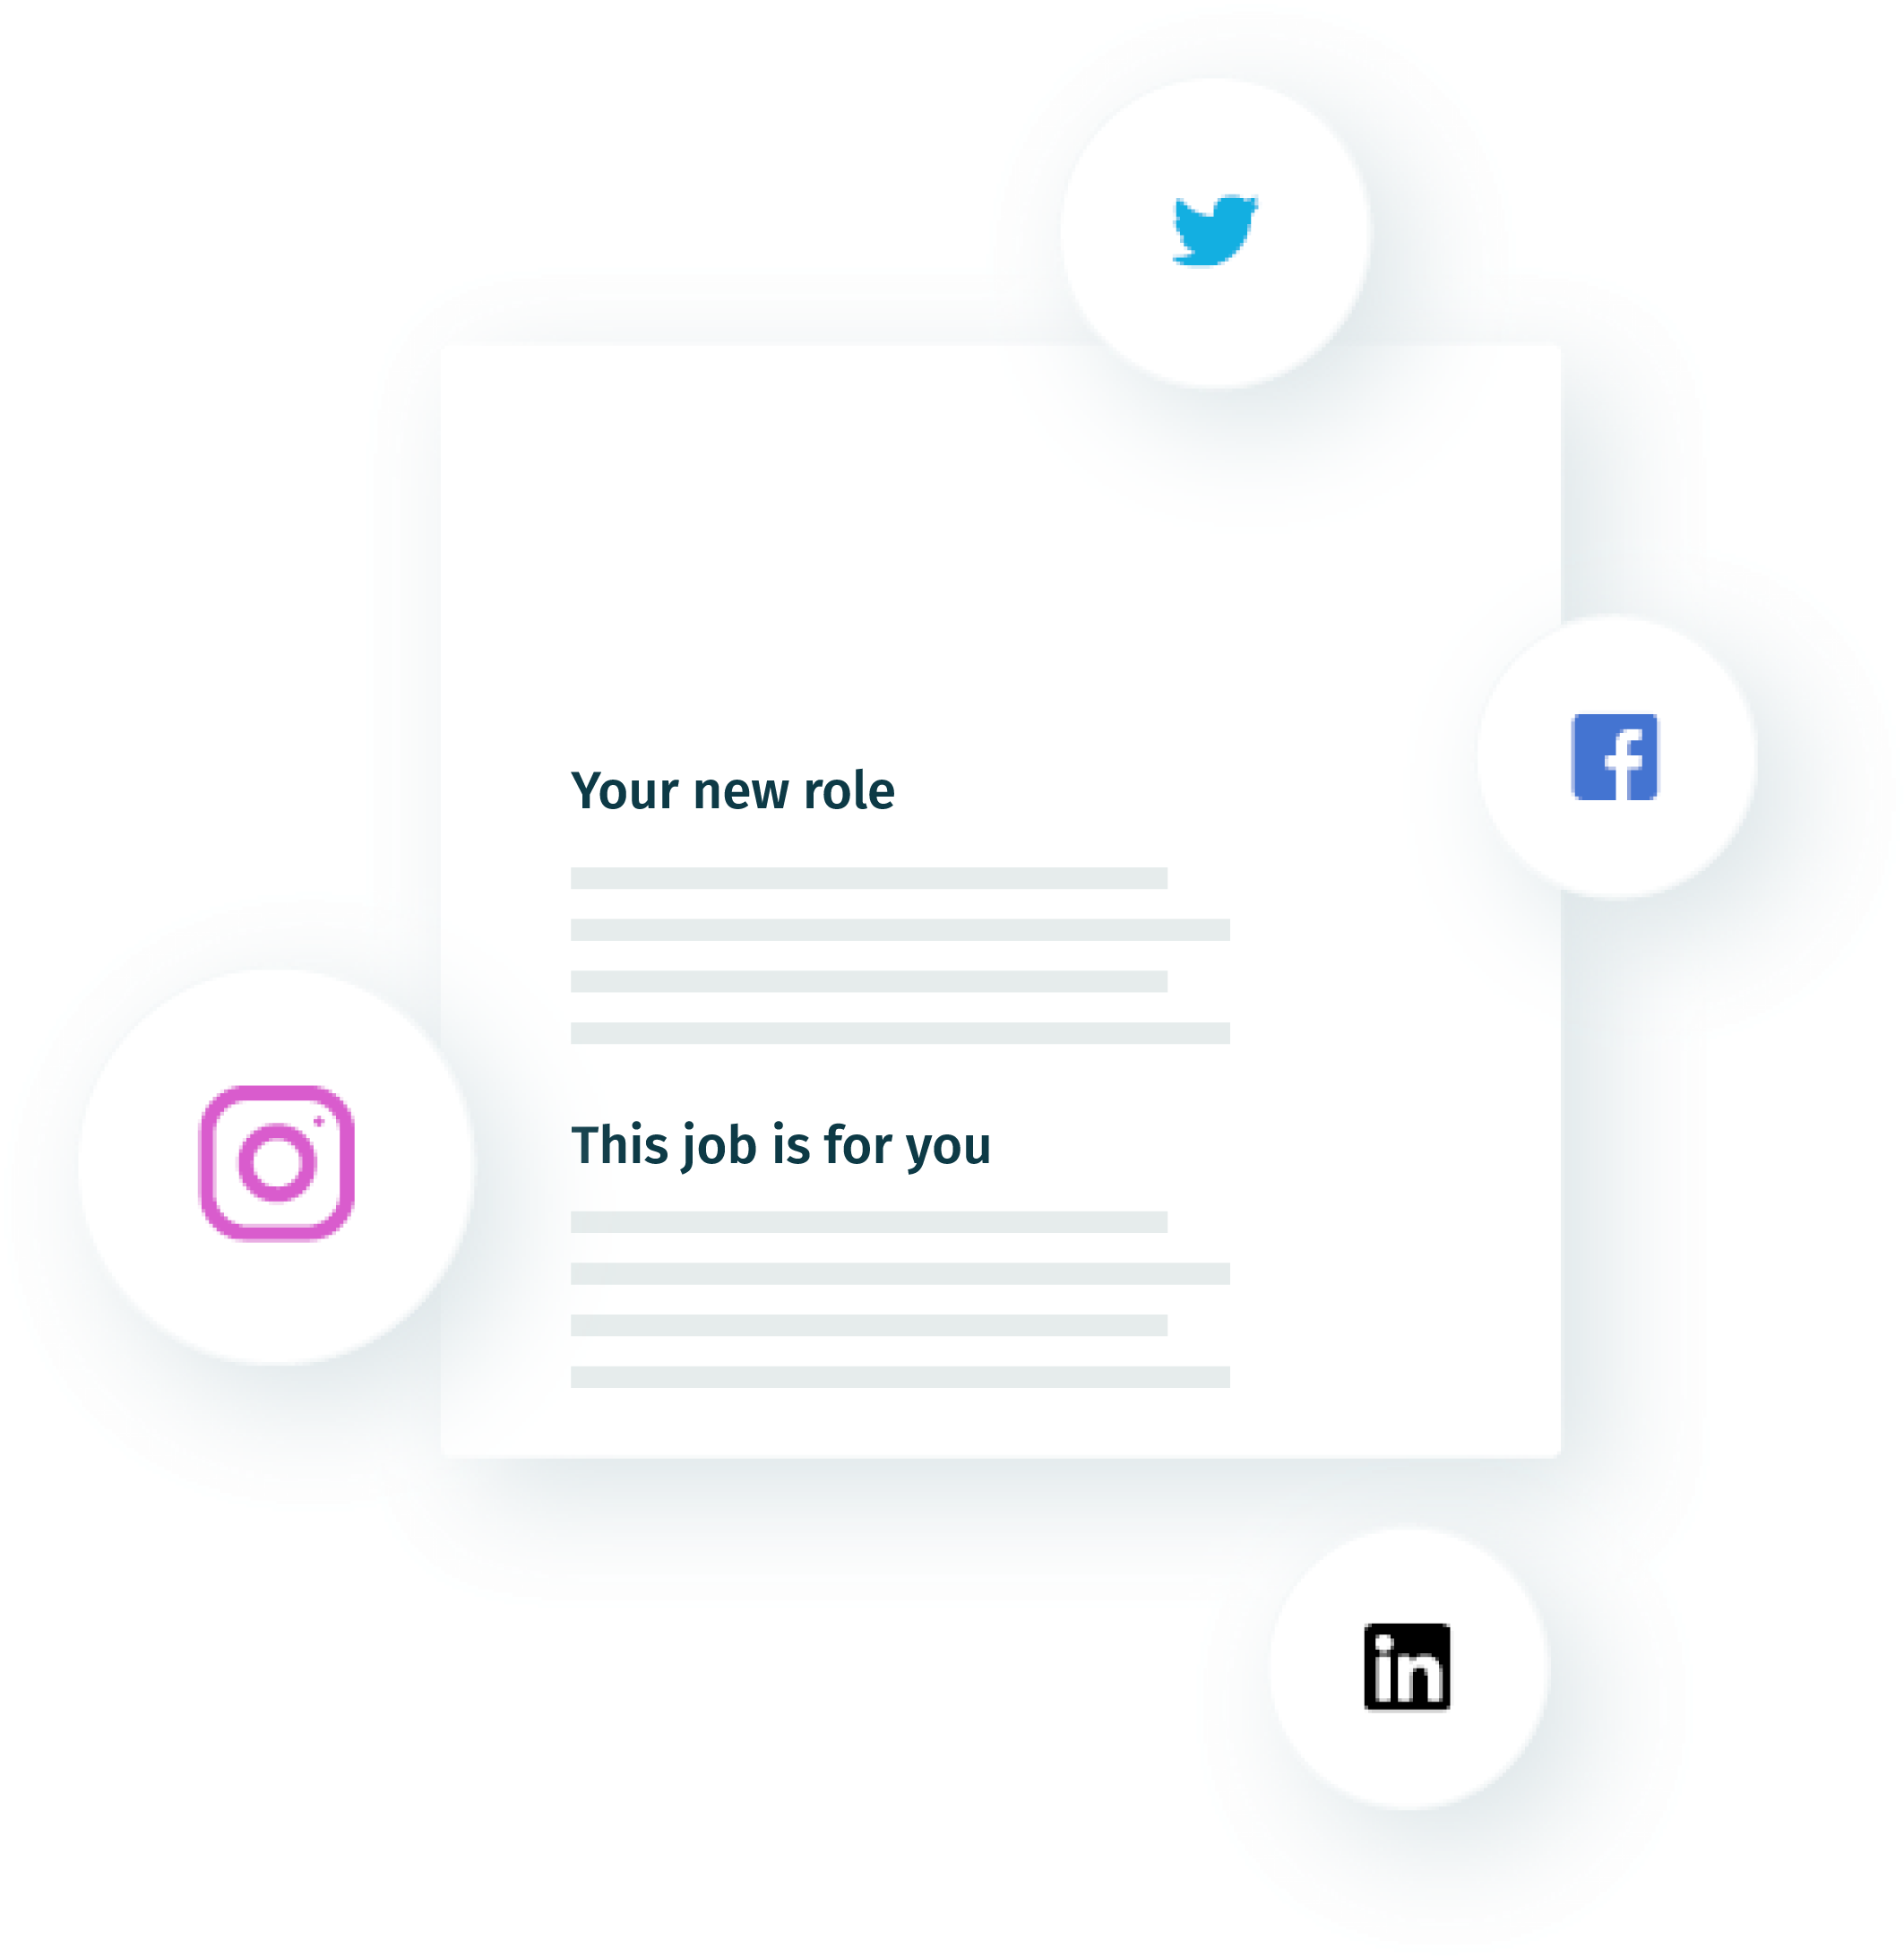 Illustration of job ad with social media icons suraounding it